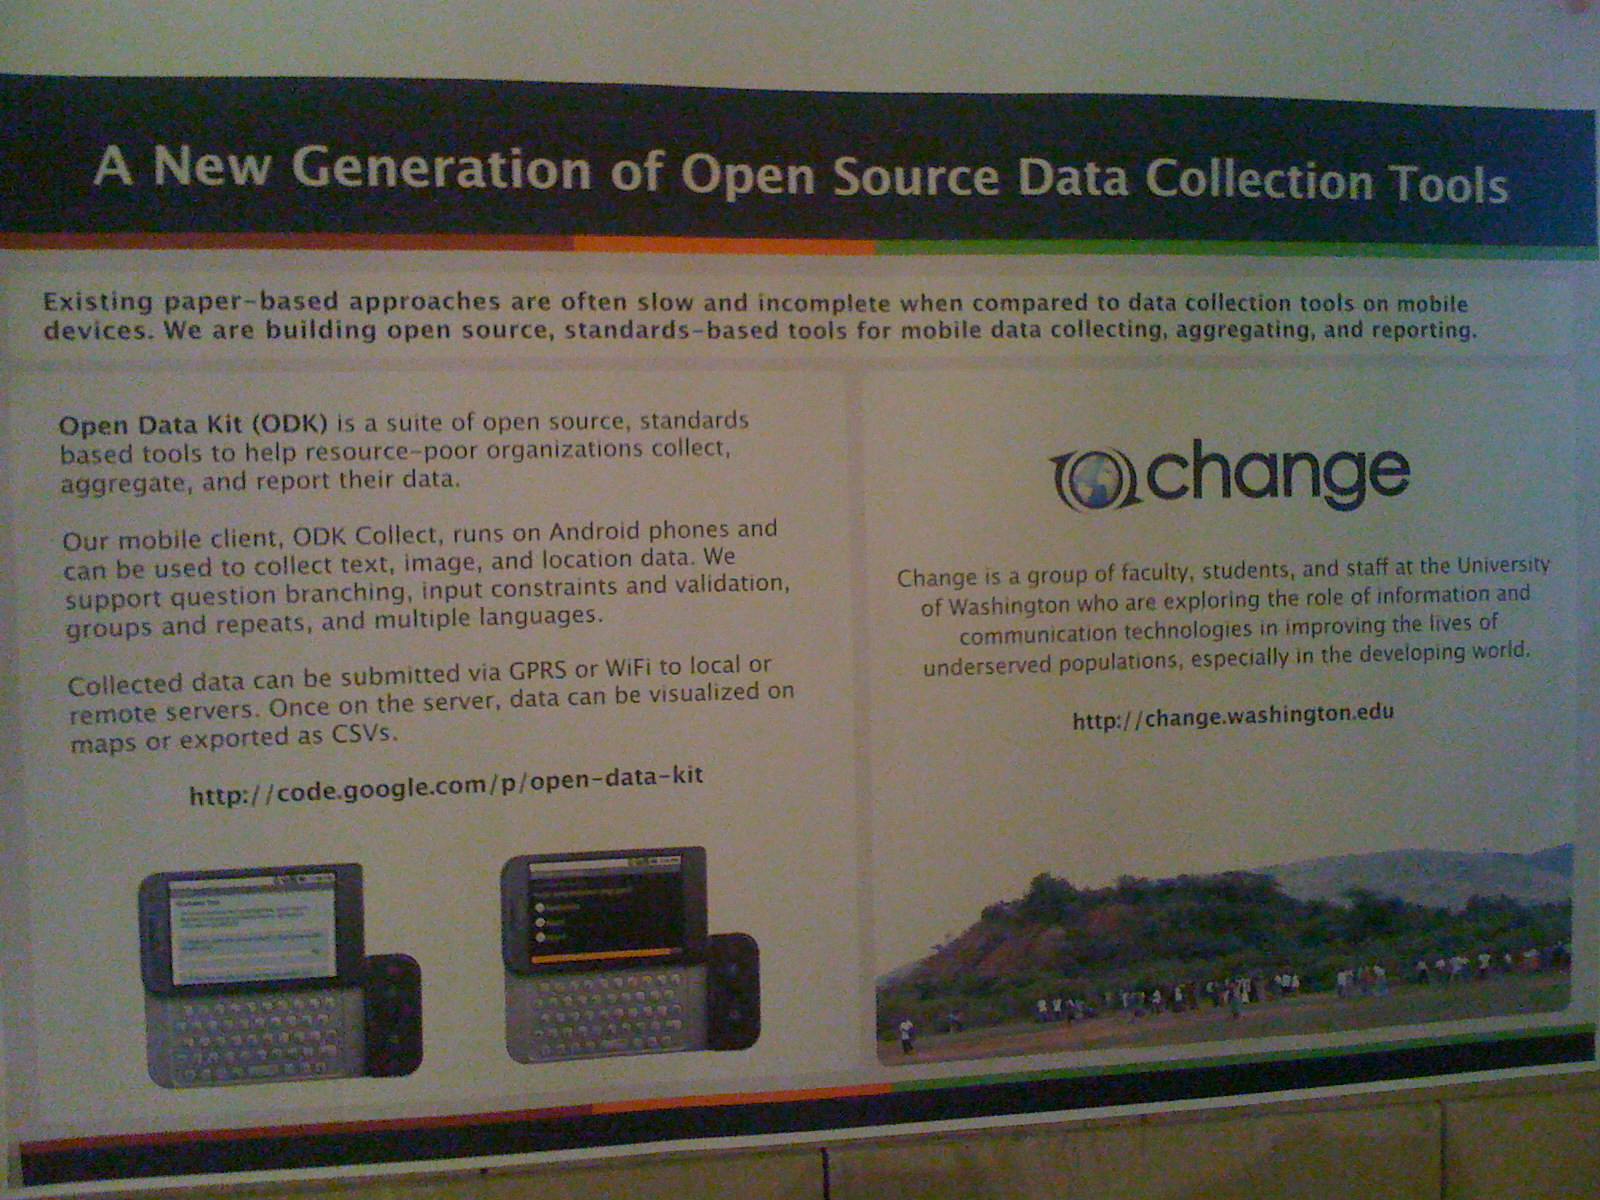 opensourcecollection